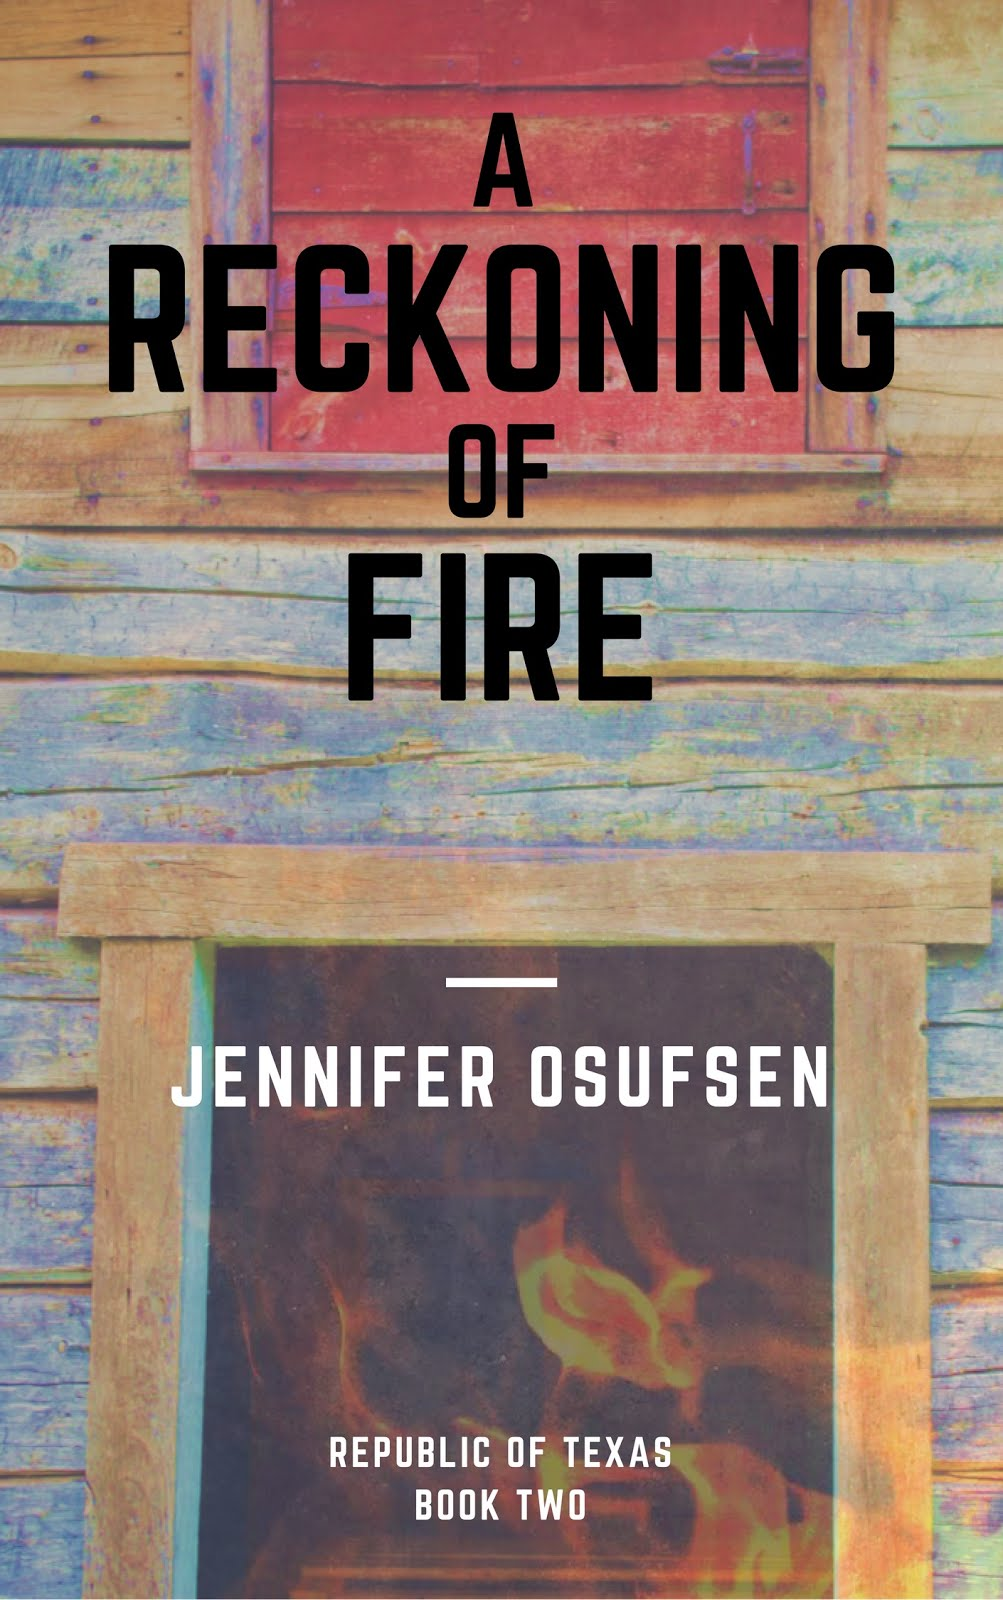 A Reckoning of Fire